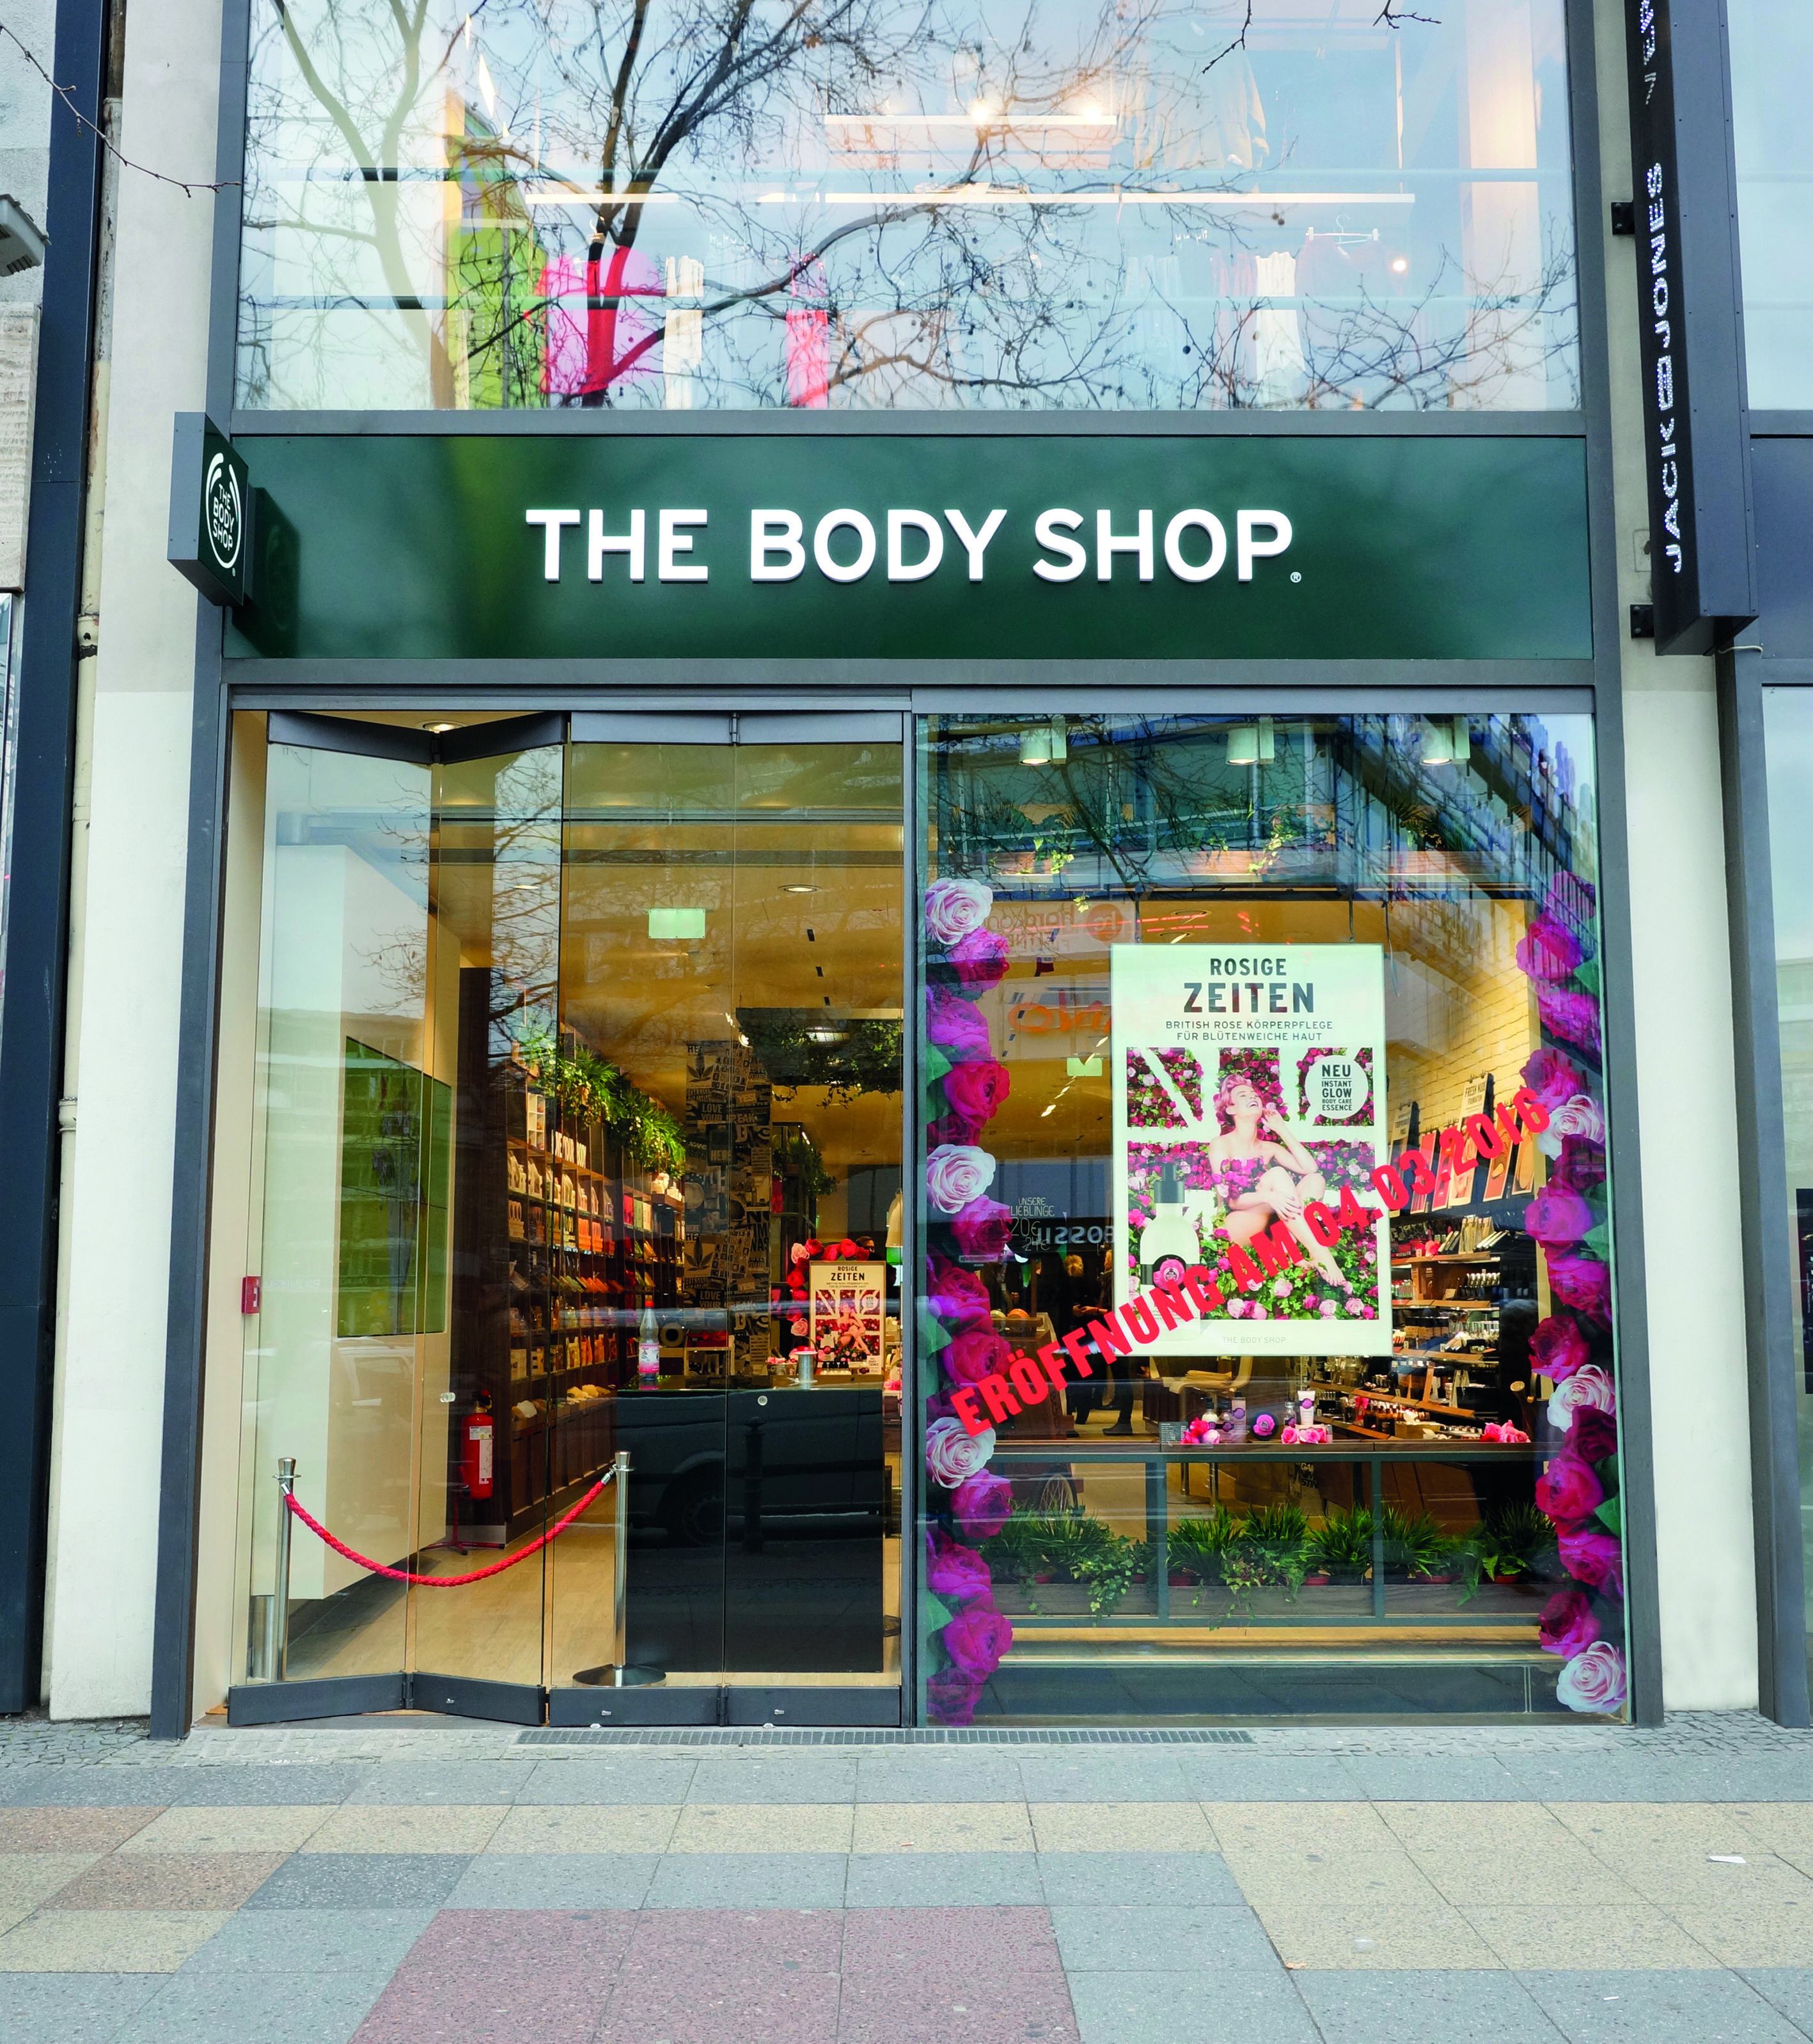 The Body Shop Launched A New Flagship Store In Berlin Thebodyshop Berlin Thelocationgroup Shopopening Storeopening Elocations